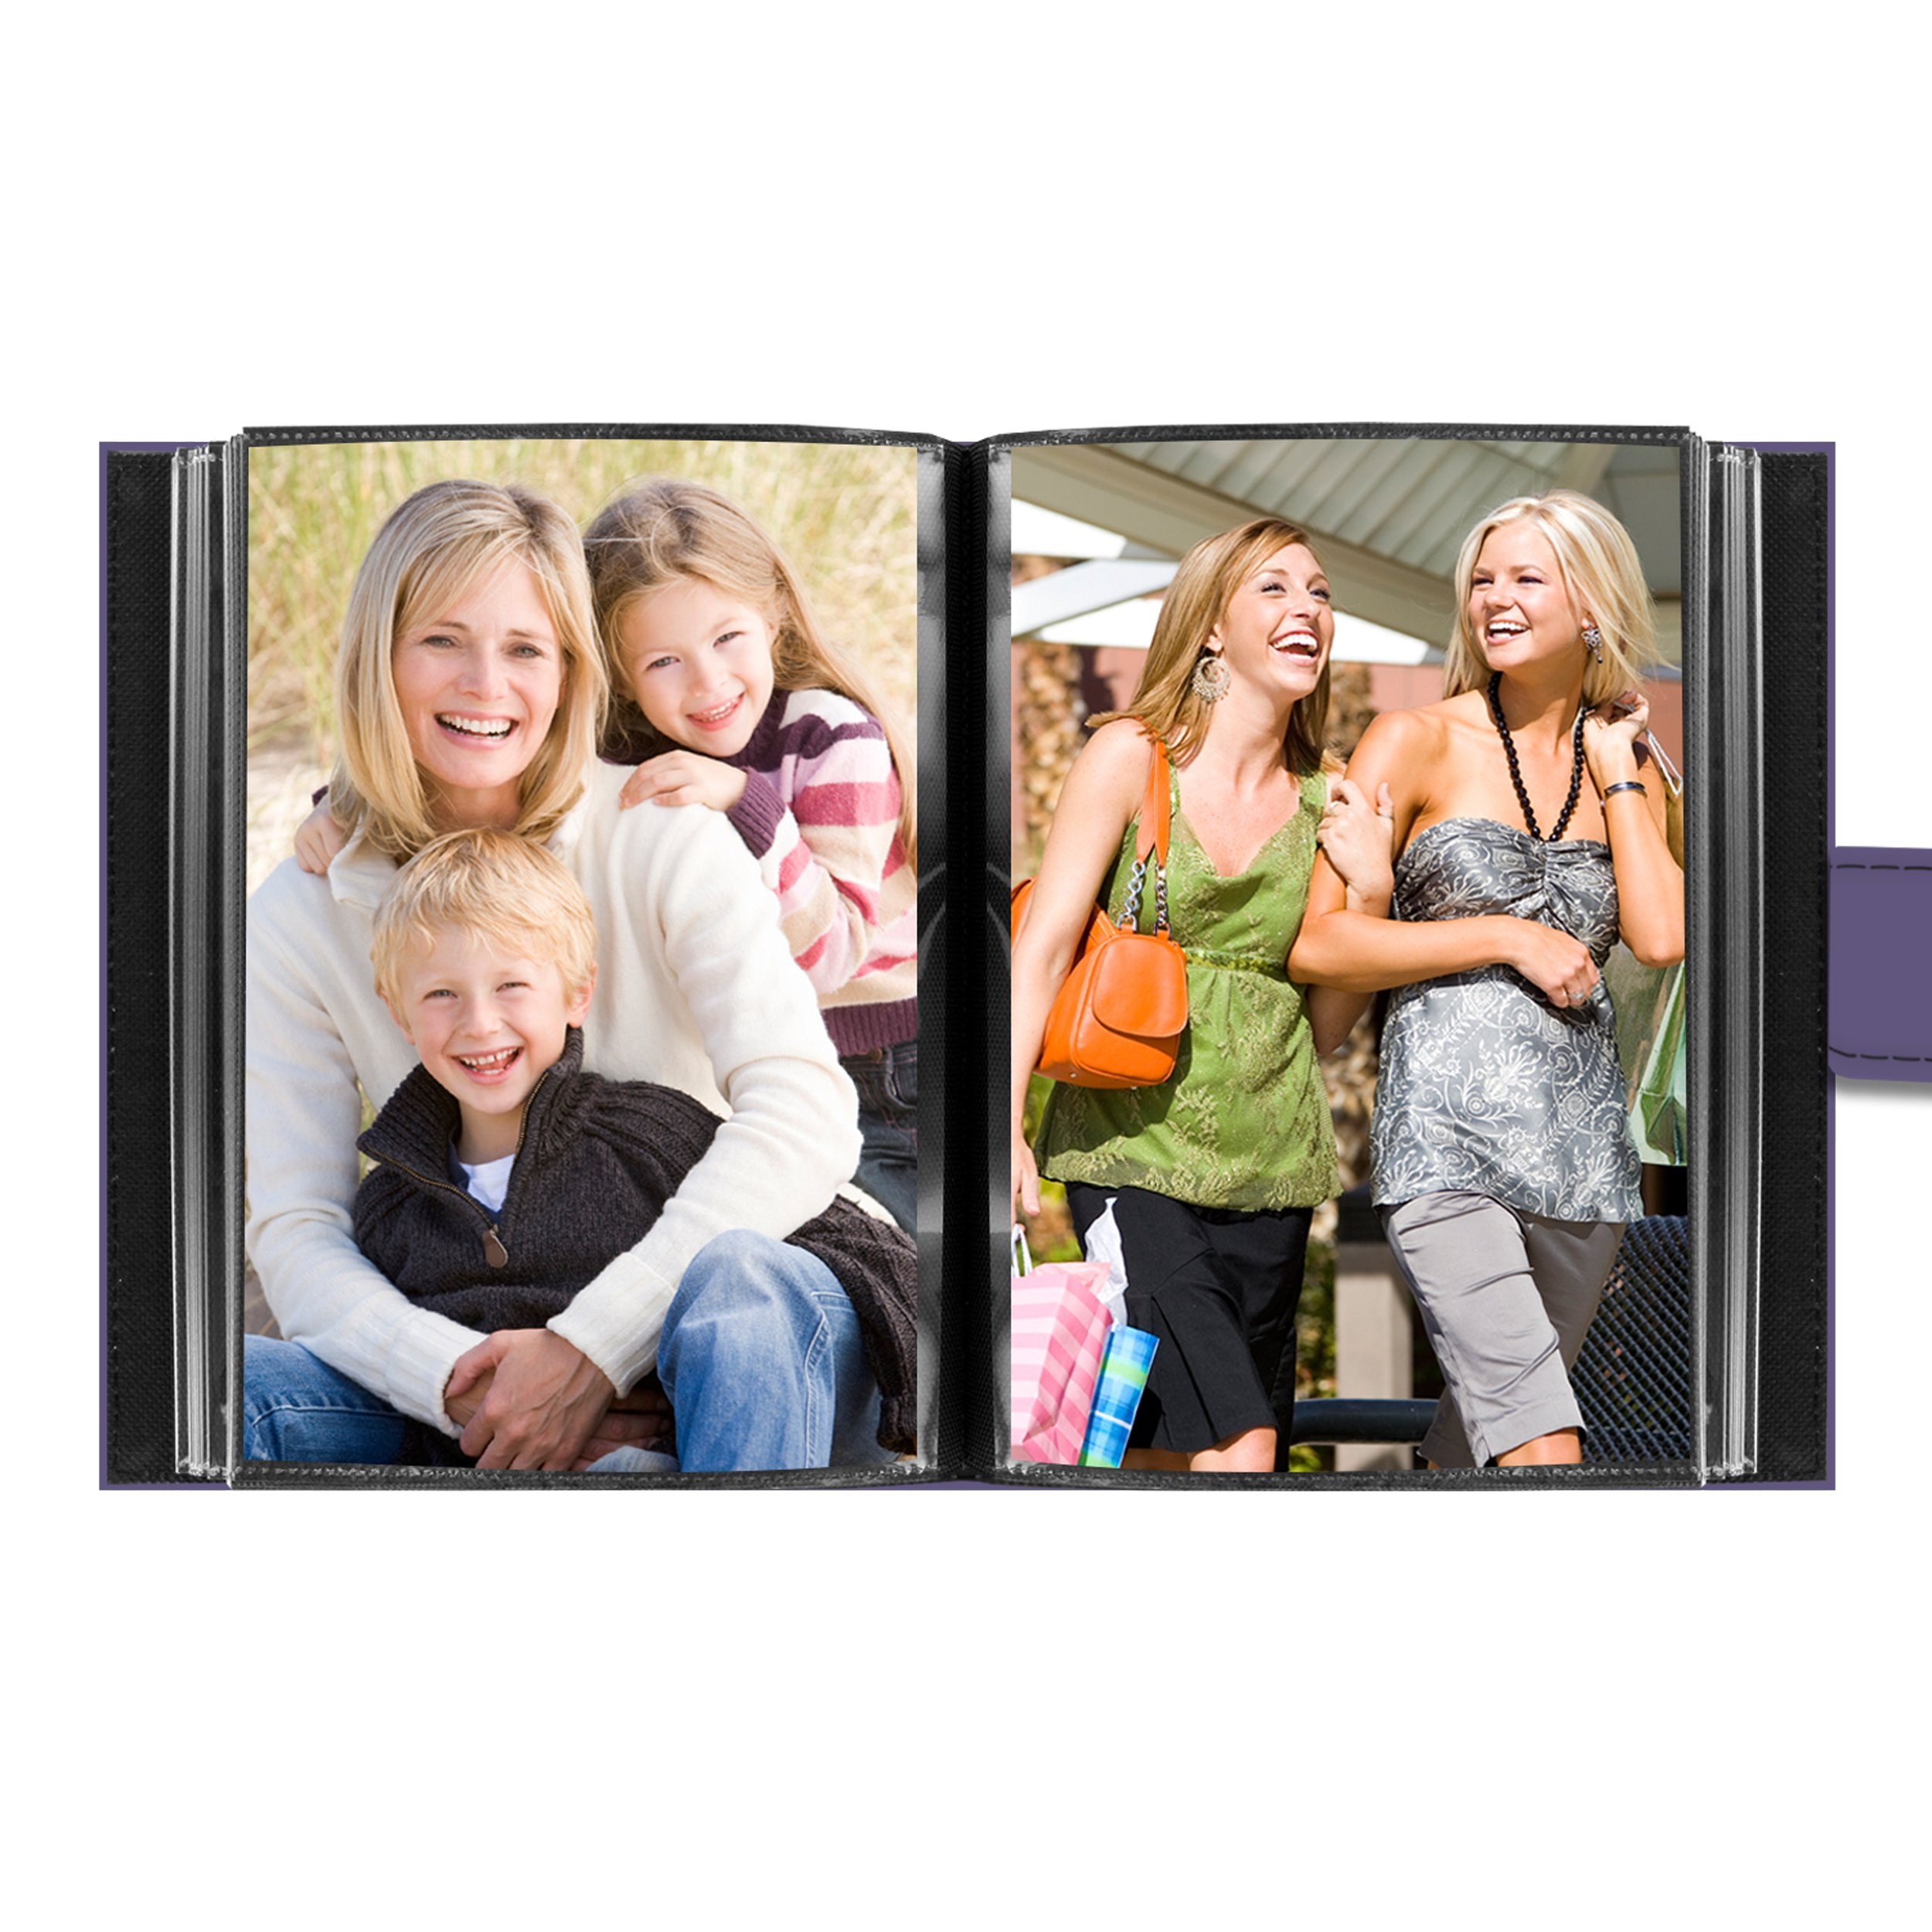 Pioneer Photo Albums EXP-46/LF Pioneer Embroidered Magnetic Strap Sewn Leatherette Cover Mini Photo Album,''friends'' Lavender by Pioneer Photo Albums